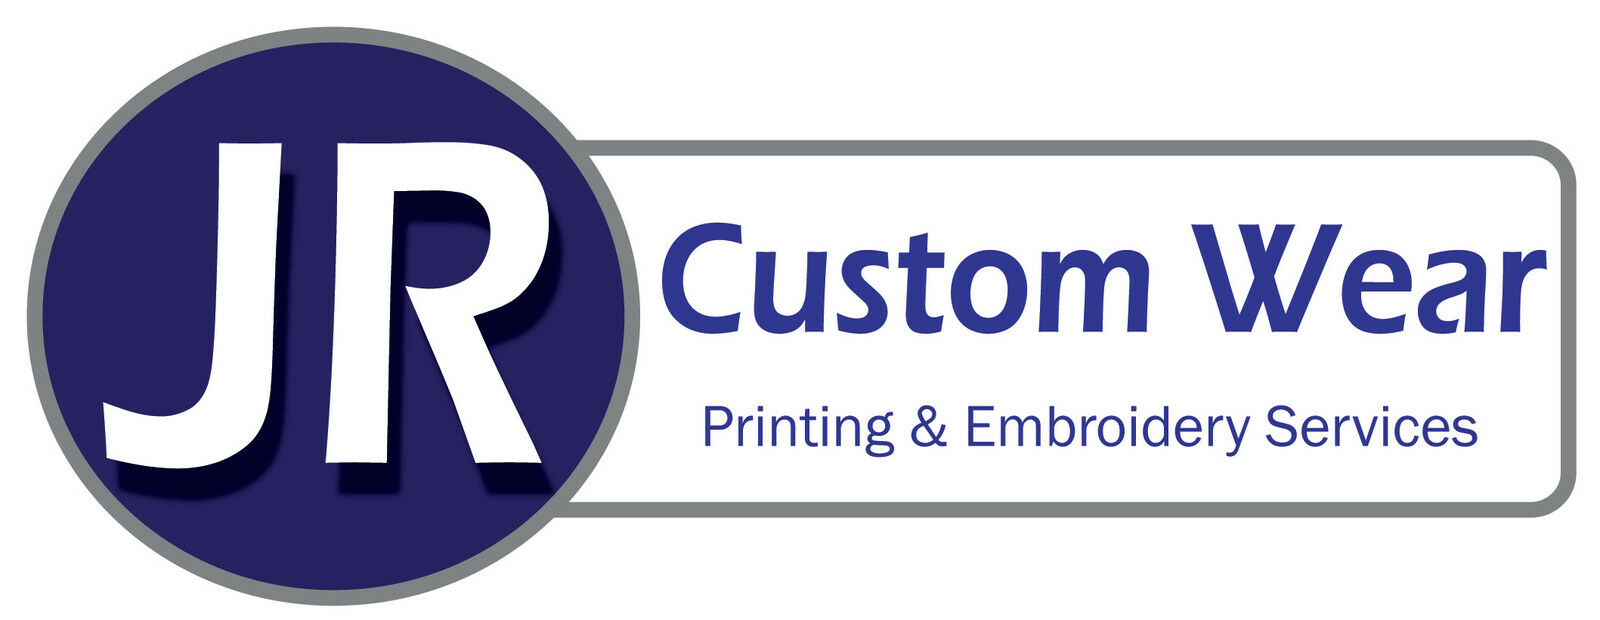 Custom Printing & Embroidery